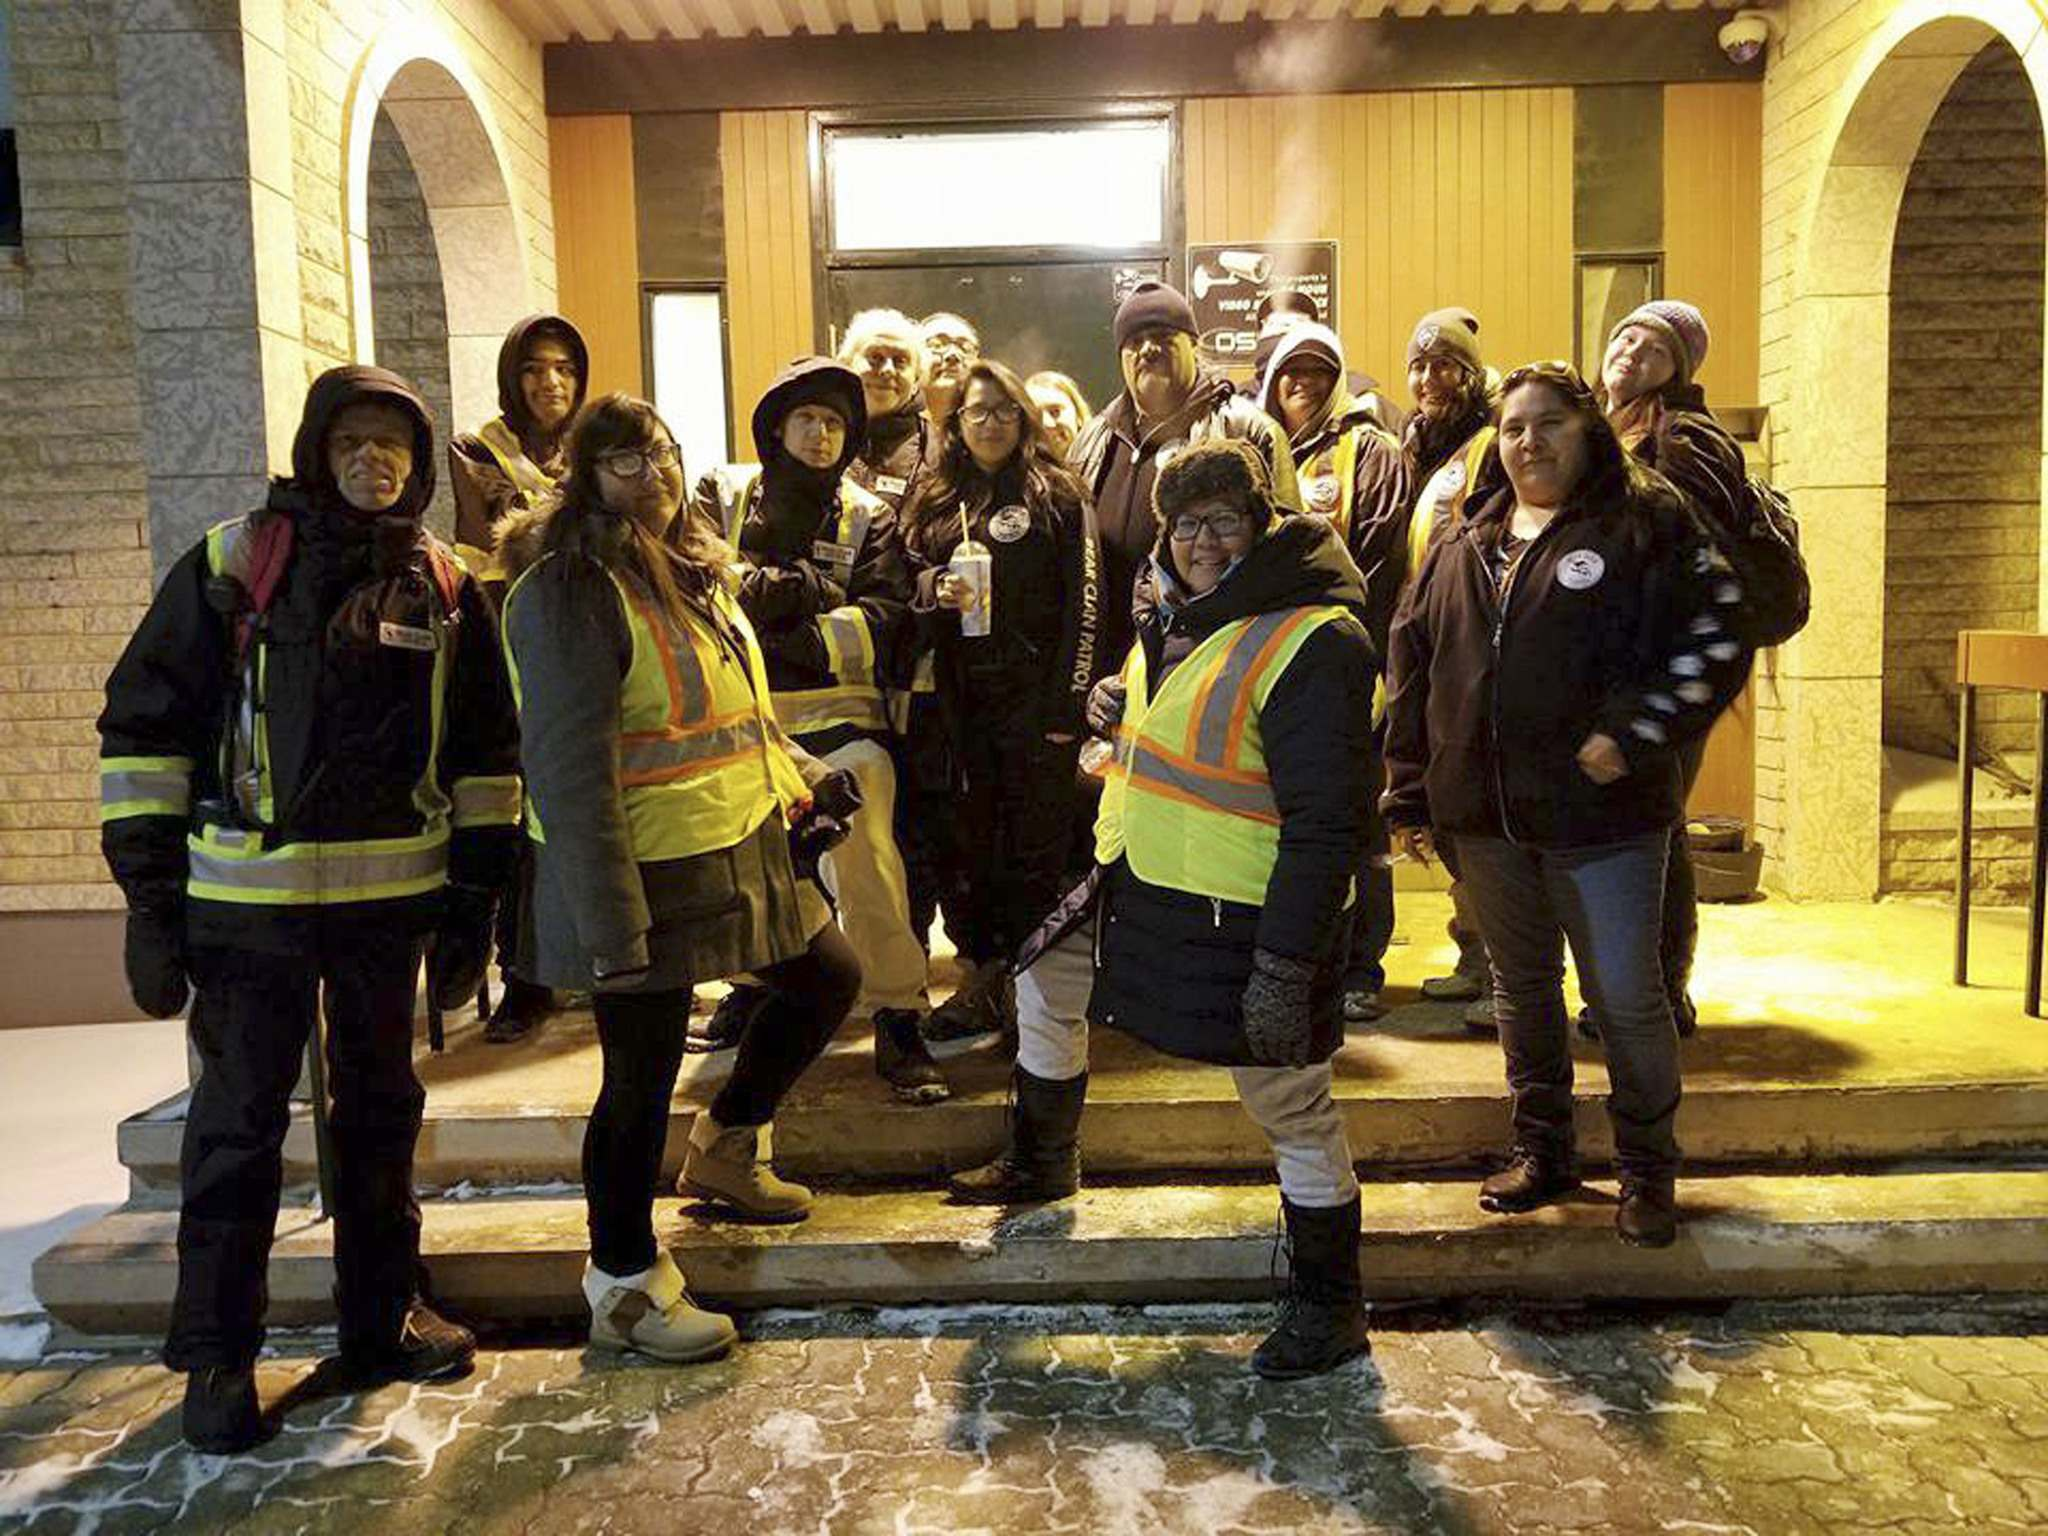 """McLeod says the group used the funding for """"gloves that you can pick up sharps with, vests so you can be seen at night, flashlights so they can look for people who are hidden and freezing in the evening."""" (Facebook photo / Free Press files)</p></p>"""